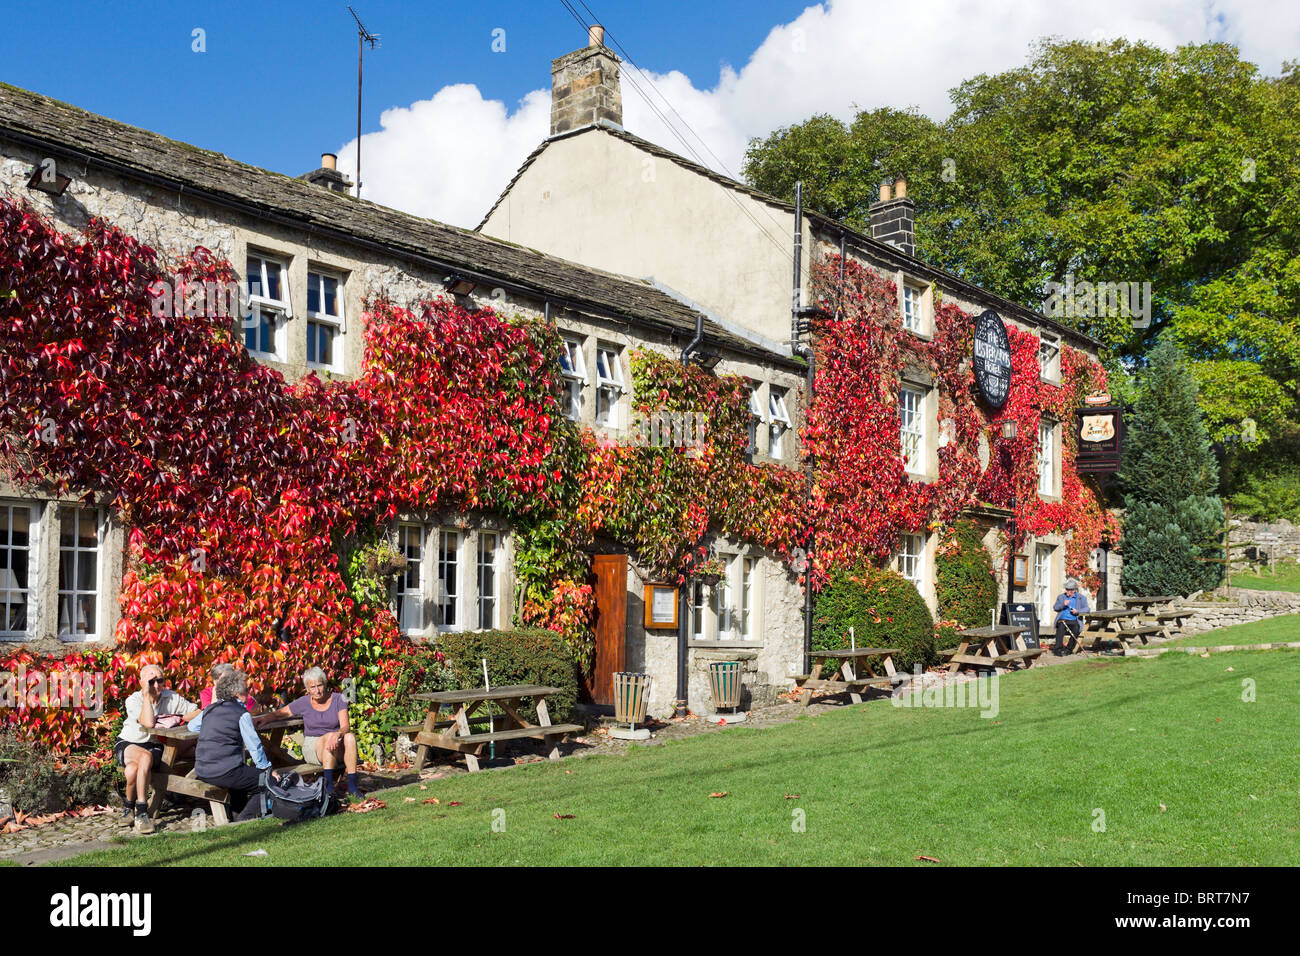 The Lister Arms hotel and pub, Malham, Wharfedale, Yorkshire Dales, England, UK - Stock Image